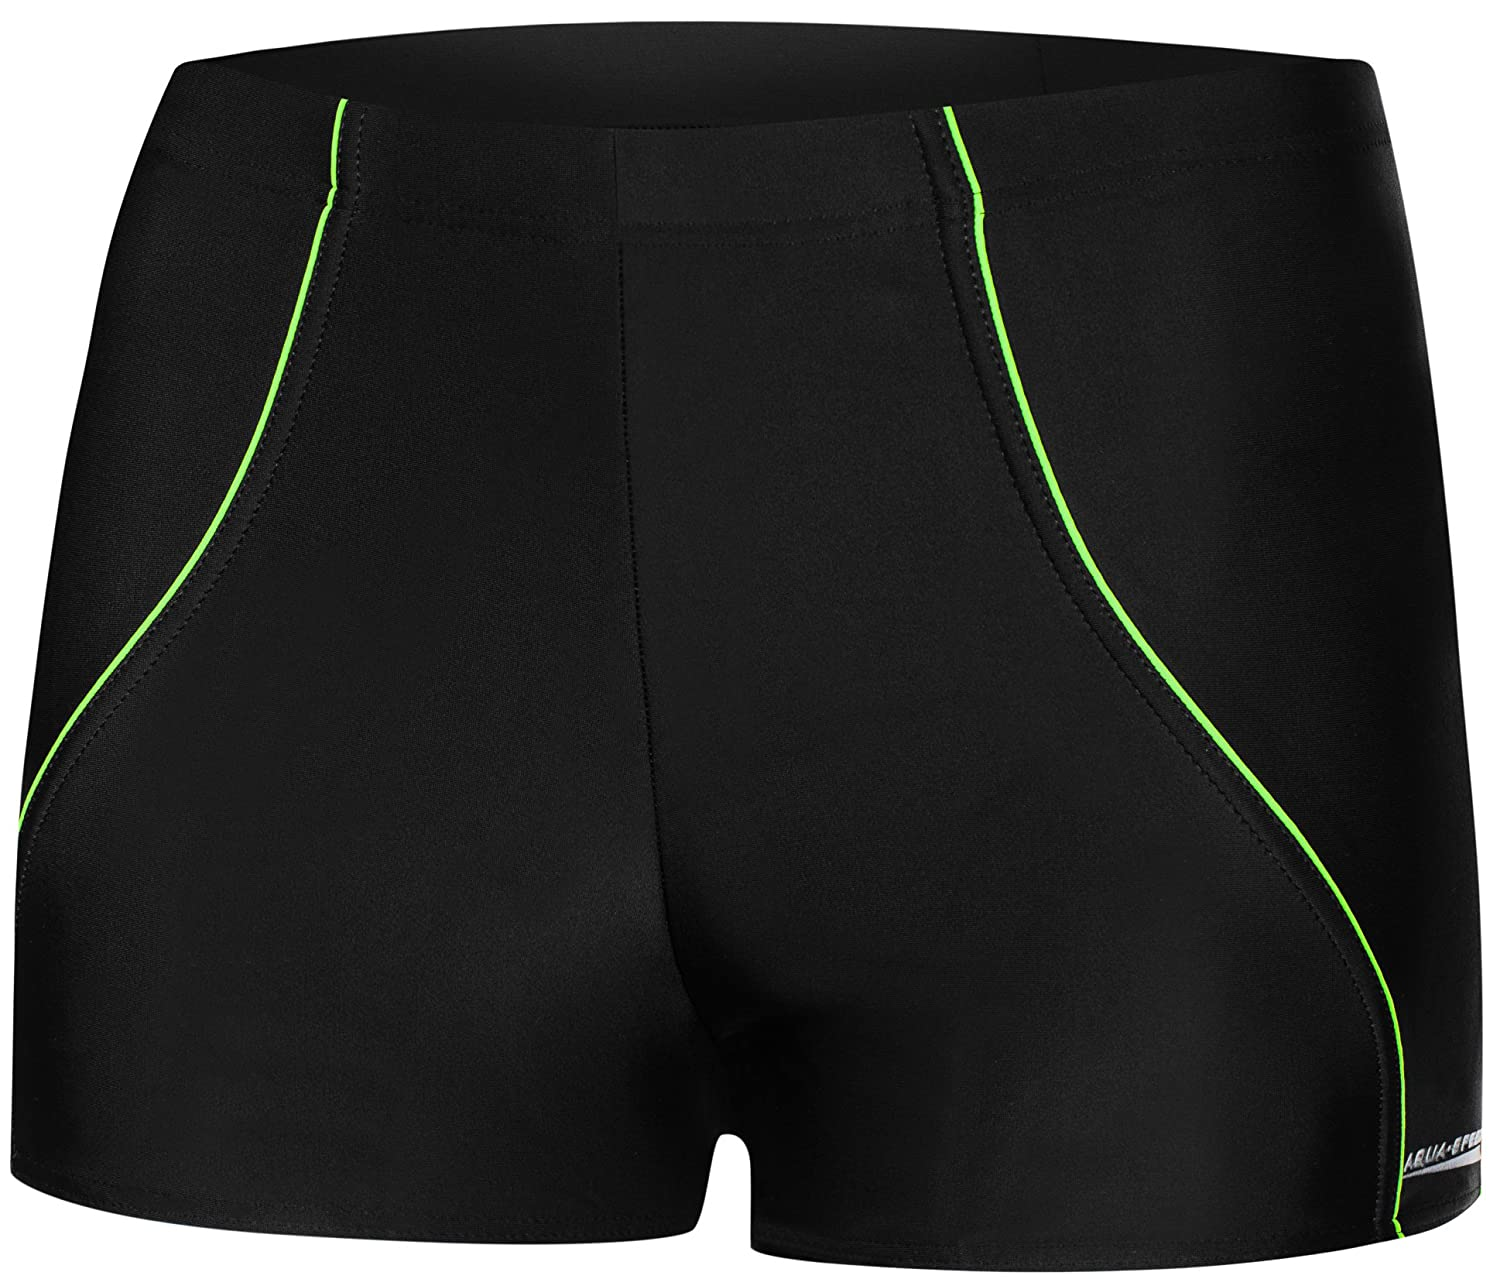 Aqua-Speed Mens Swimming Trunks | S-XXXL | Modern | Perfect Fit | UV-Protection | Chlorine resistant | Drawstring Aqua Speed